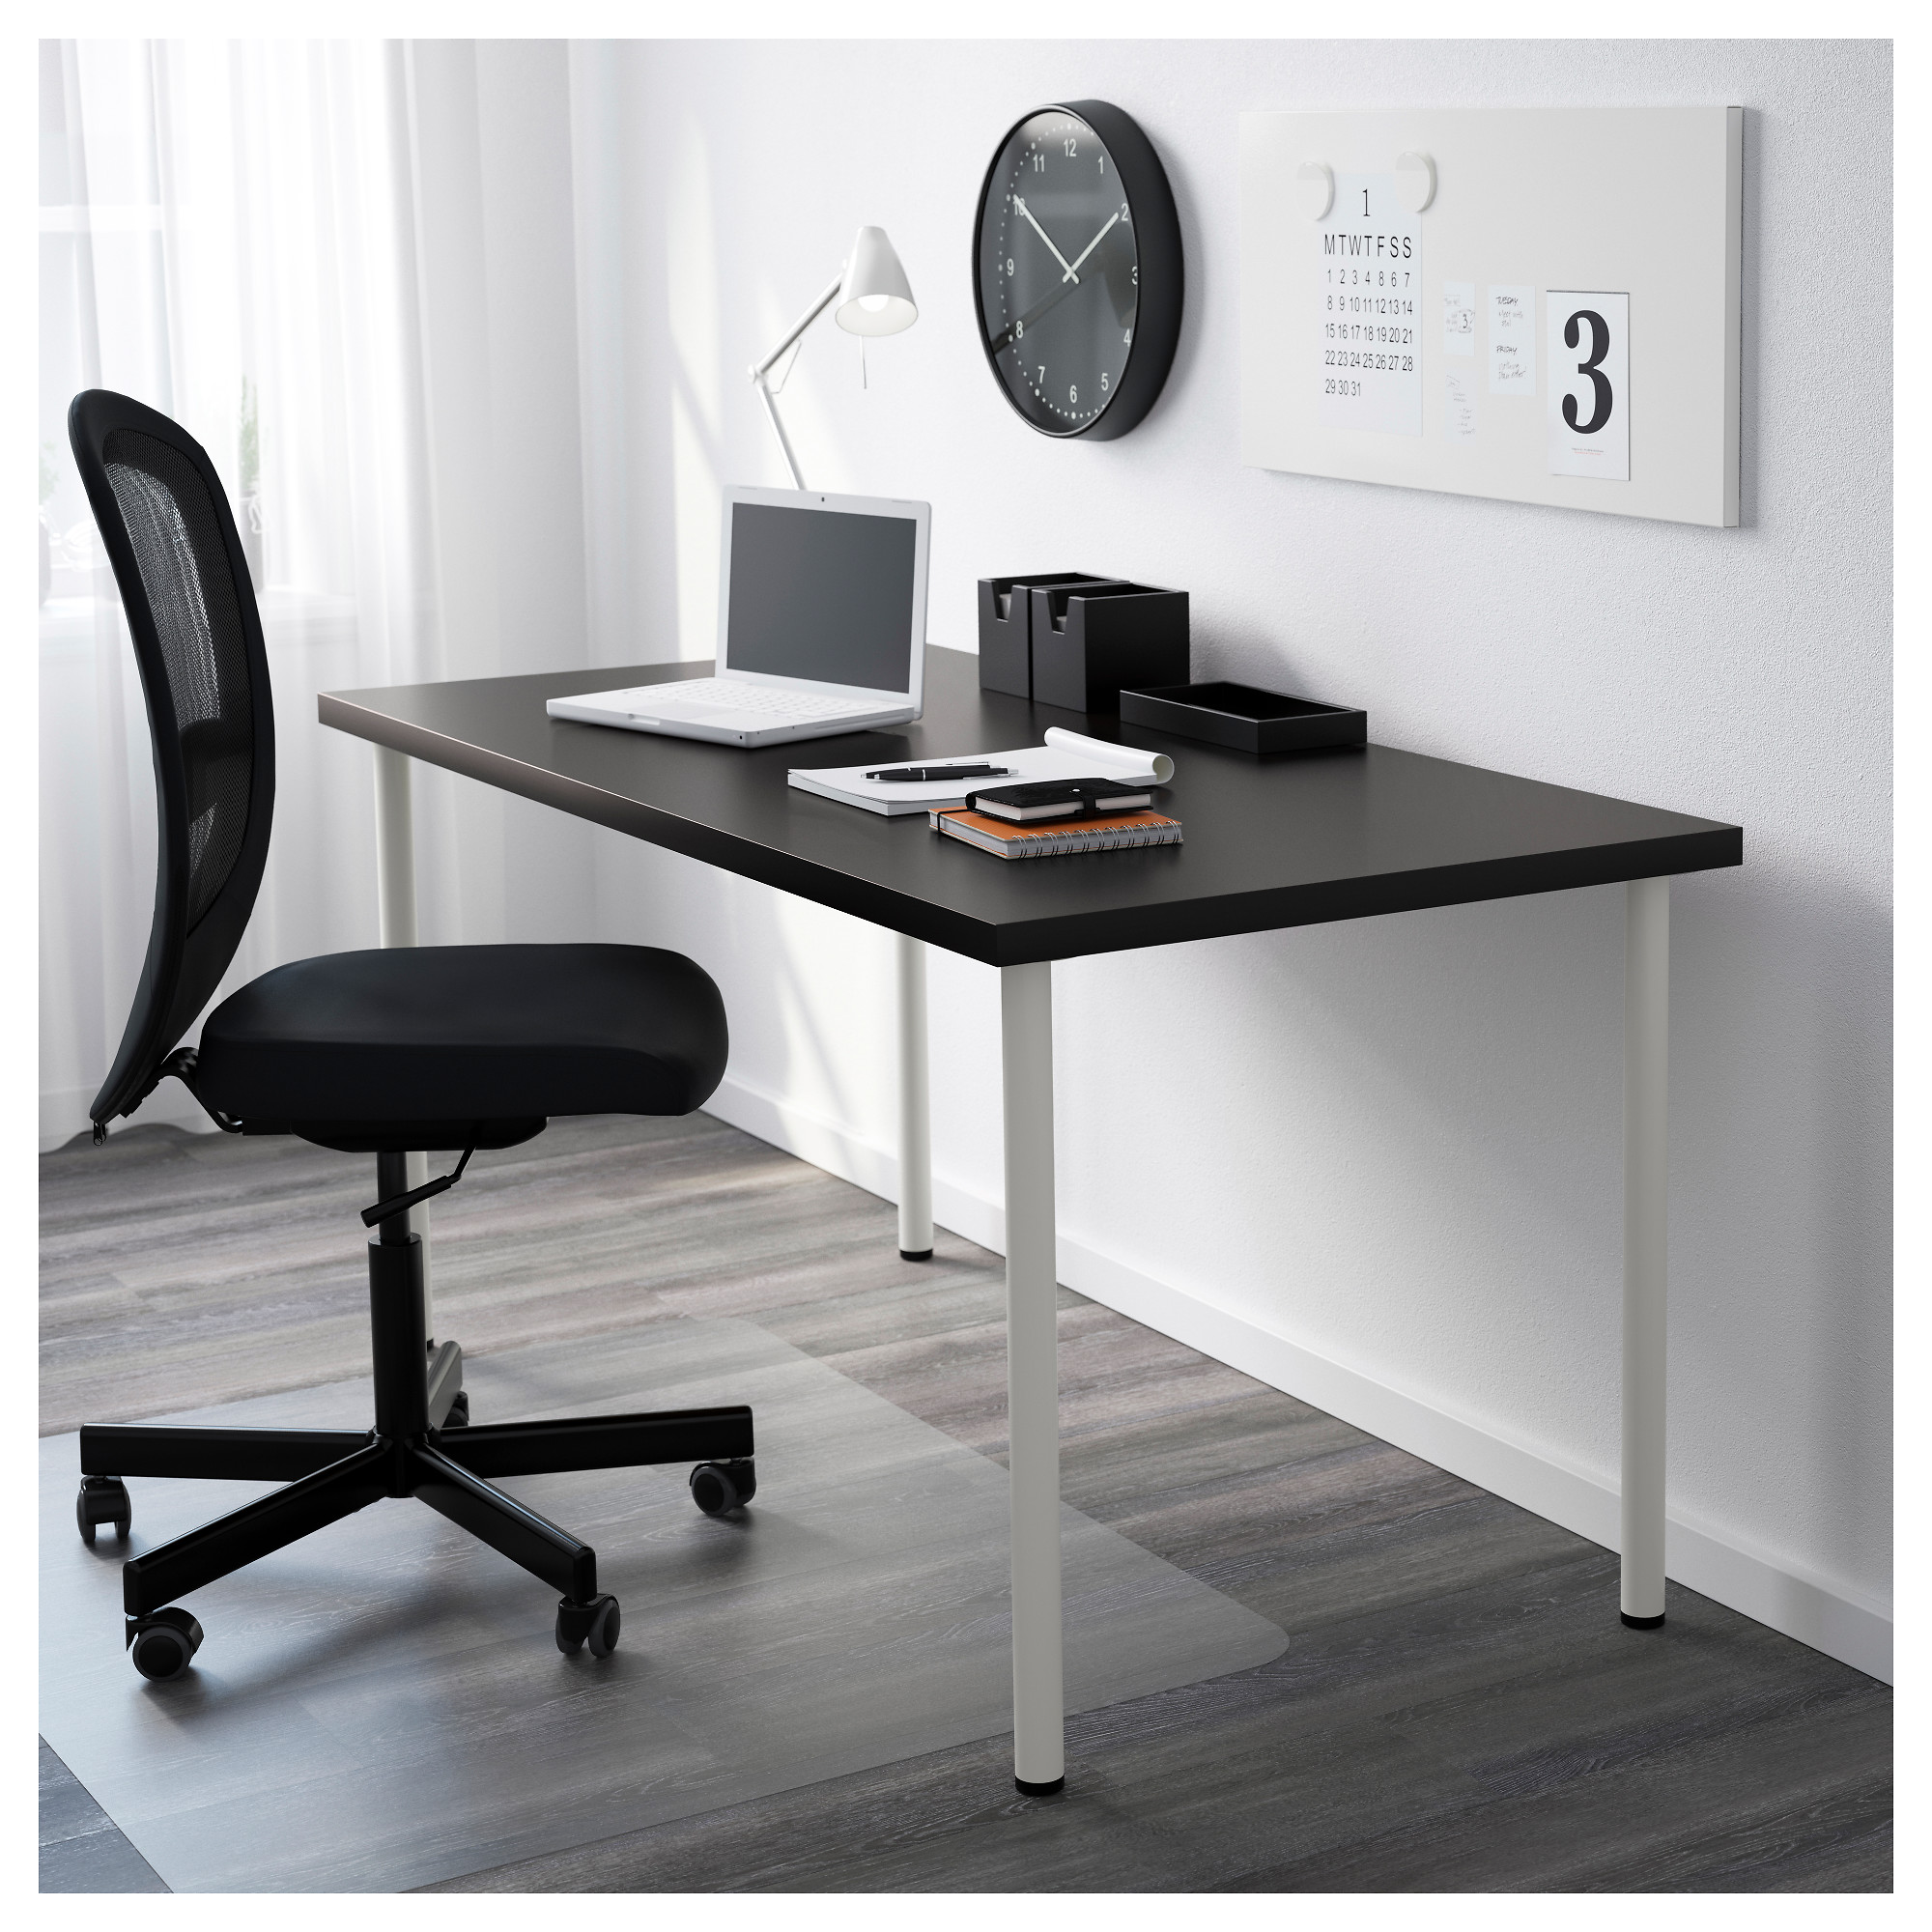 adils desks linnmonadils linnmon black brown desk en and ikea home grey catalog cm tables office